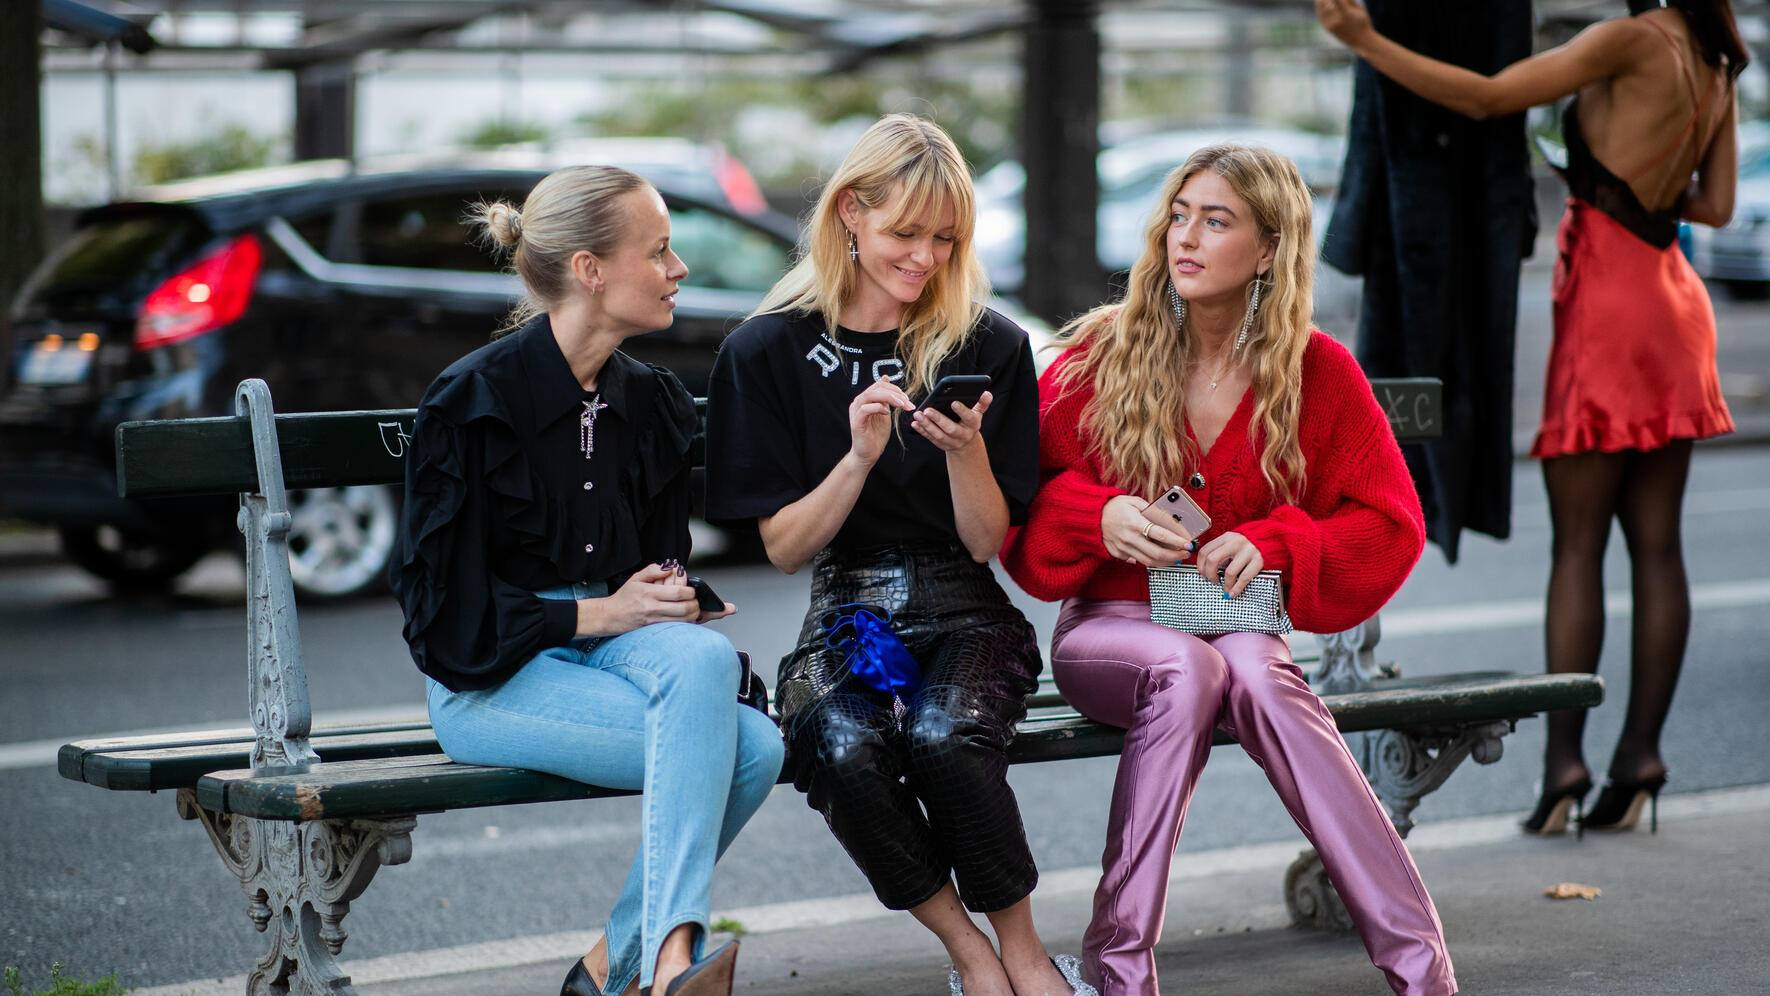 PARIS, FRANCE - SEPTEMBER 27: Thora Valdimars wearing denim jeans, black top and Jeantte Friis Madsen wearing shirt with logo print, black leather pants and Emili Sindlev wearing red knit, pink pants seen sitting on a bench checking their phone outside Alessandra Rich during Paris Fashion Week Womenswear Spring Summer 2020 on September 27, 2019 in Paris, France. (Photo by Christian Vierig/Getty Images)